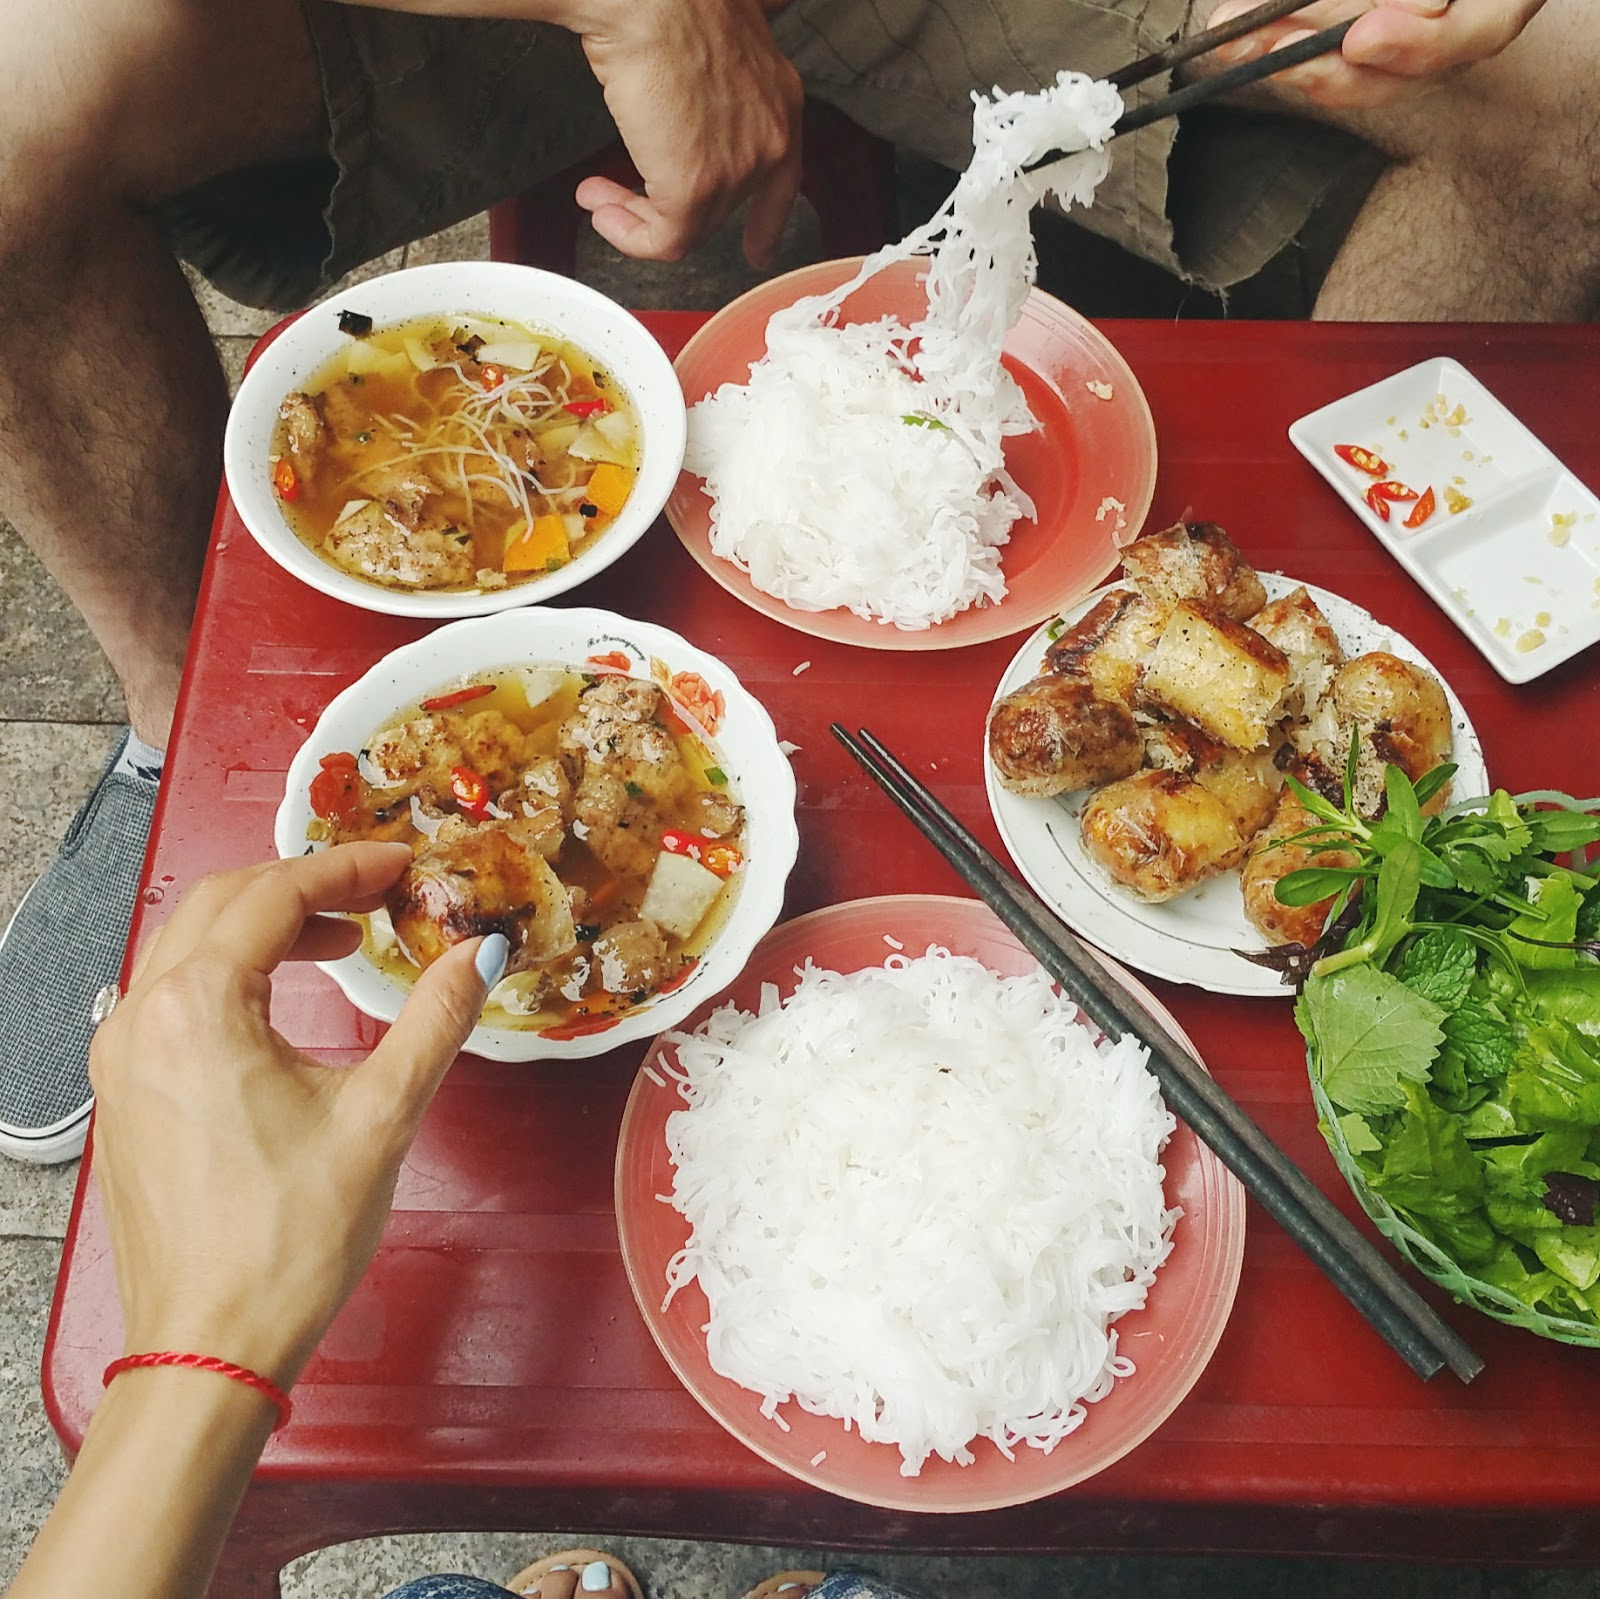 Honeymoon with the tasteful me street food in Hanoi, Vietnam